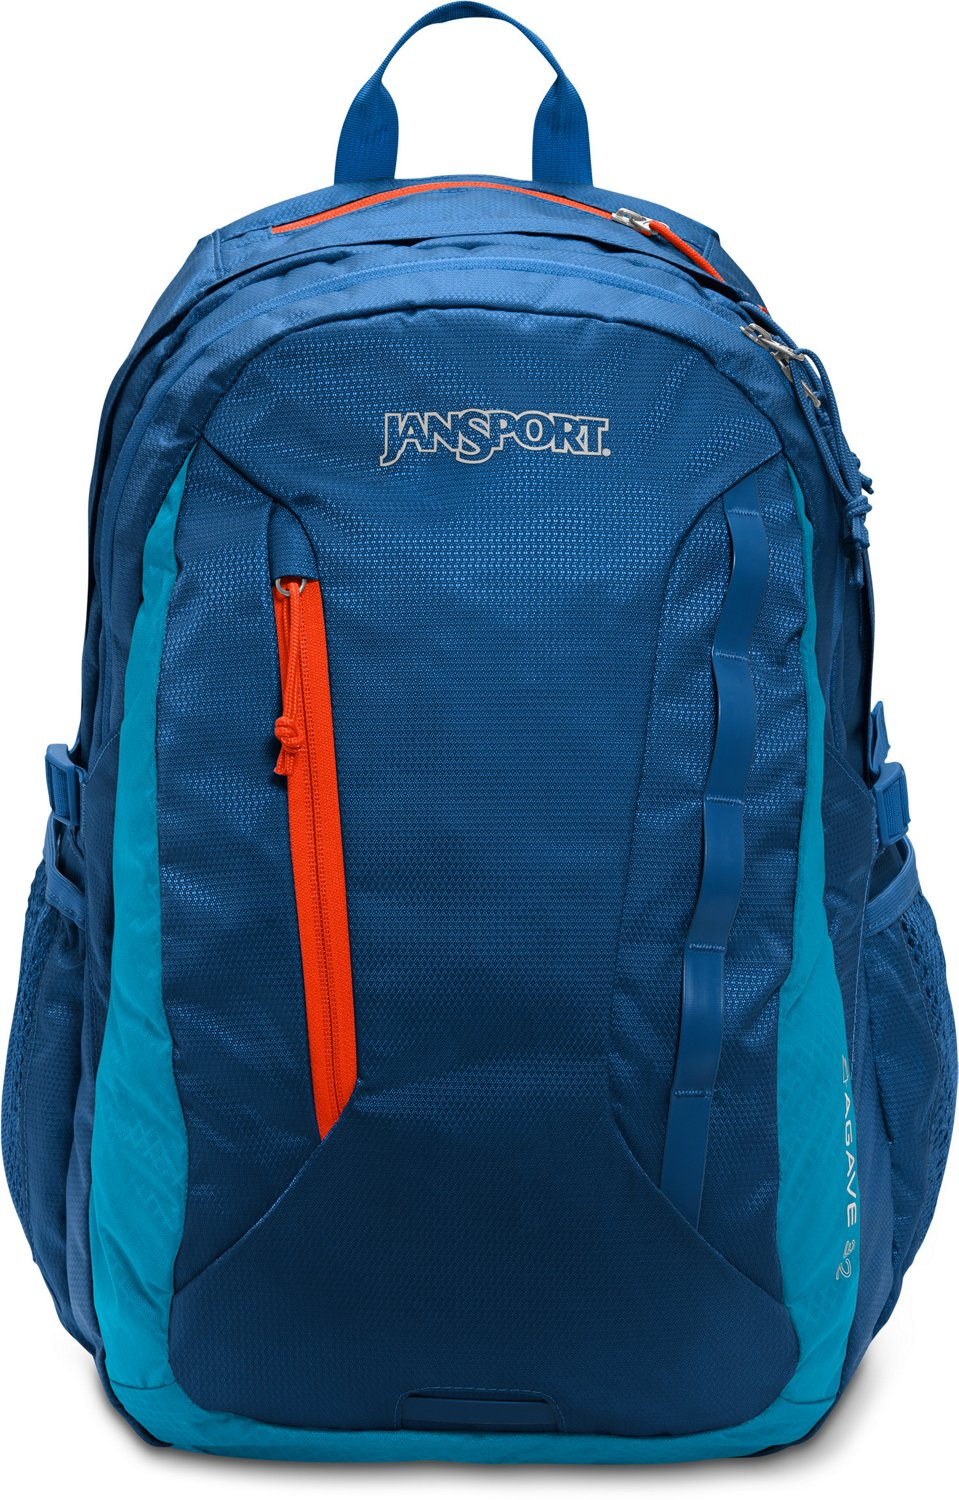 JanSport Agave Backpack - view number 2